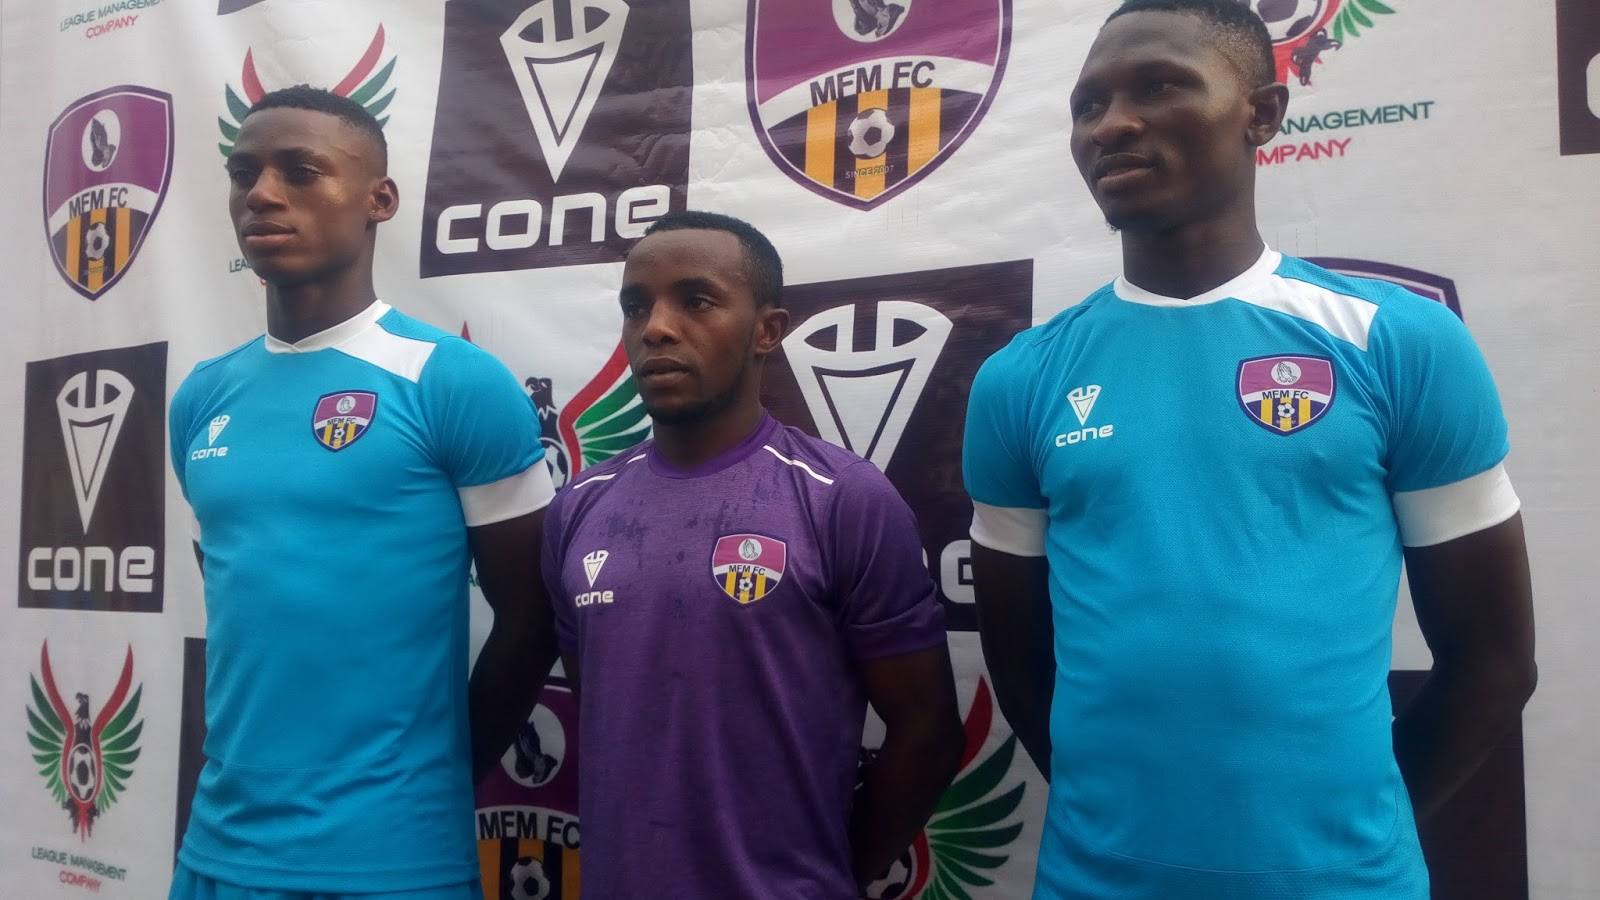 Goals from Odey,Olatunbosun,NUWA secures second spot for MFM